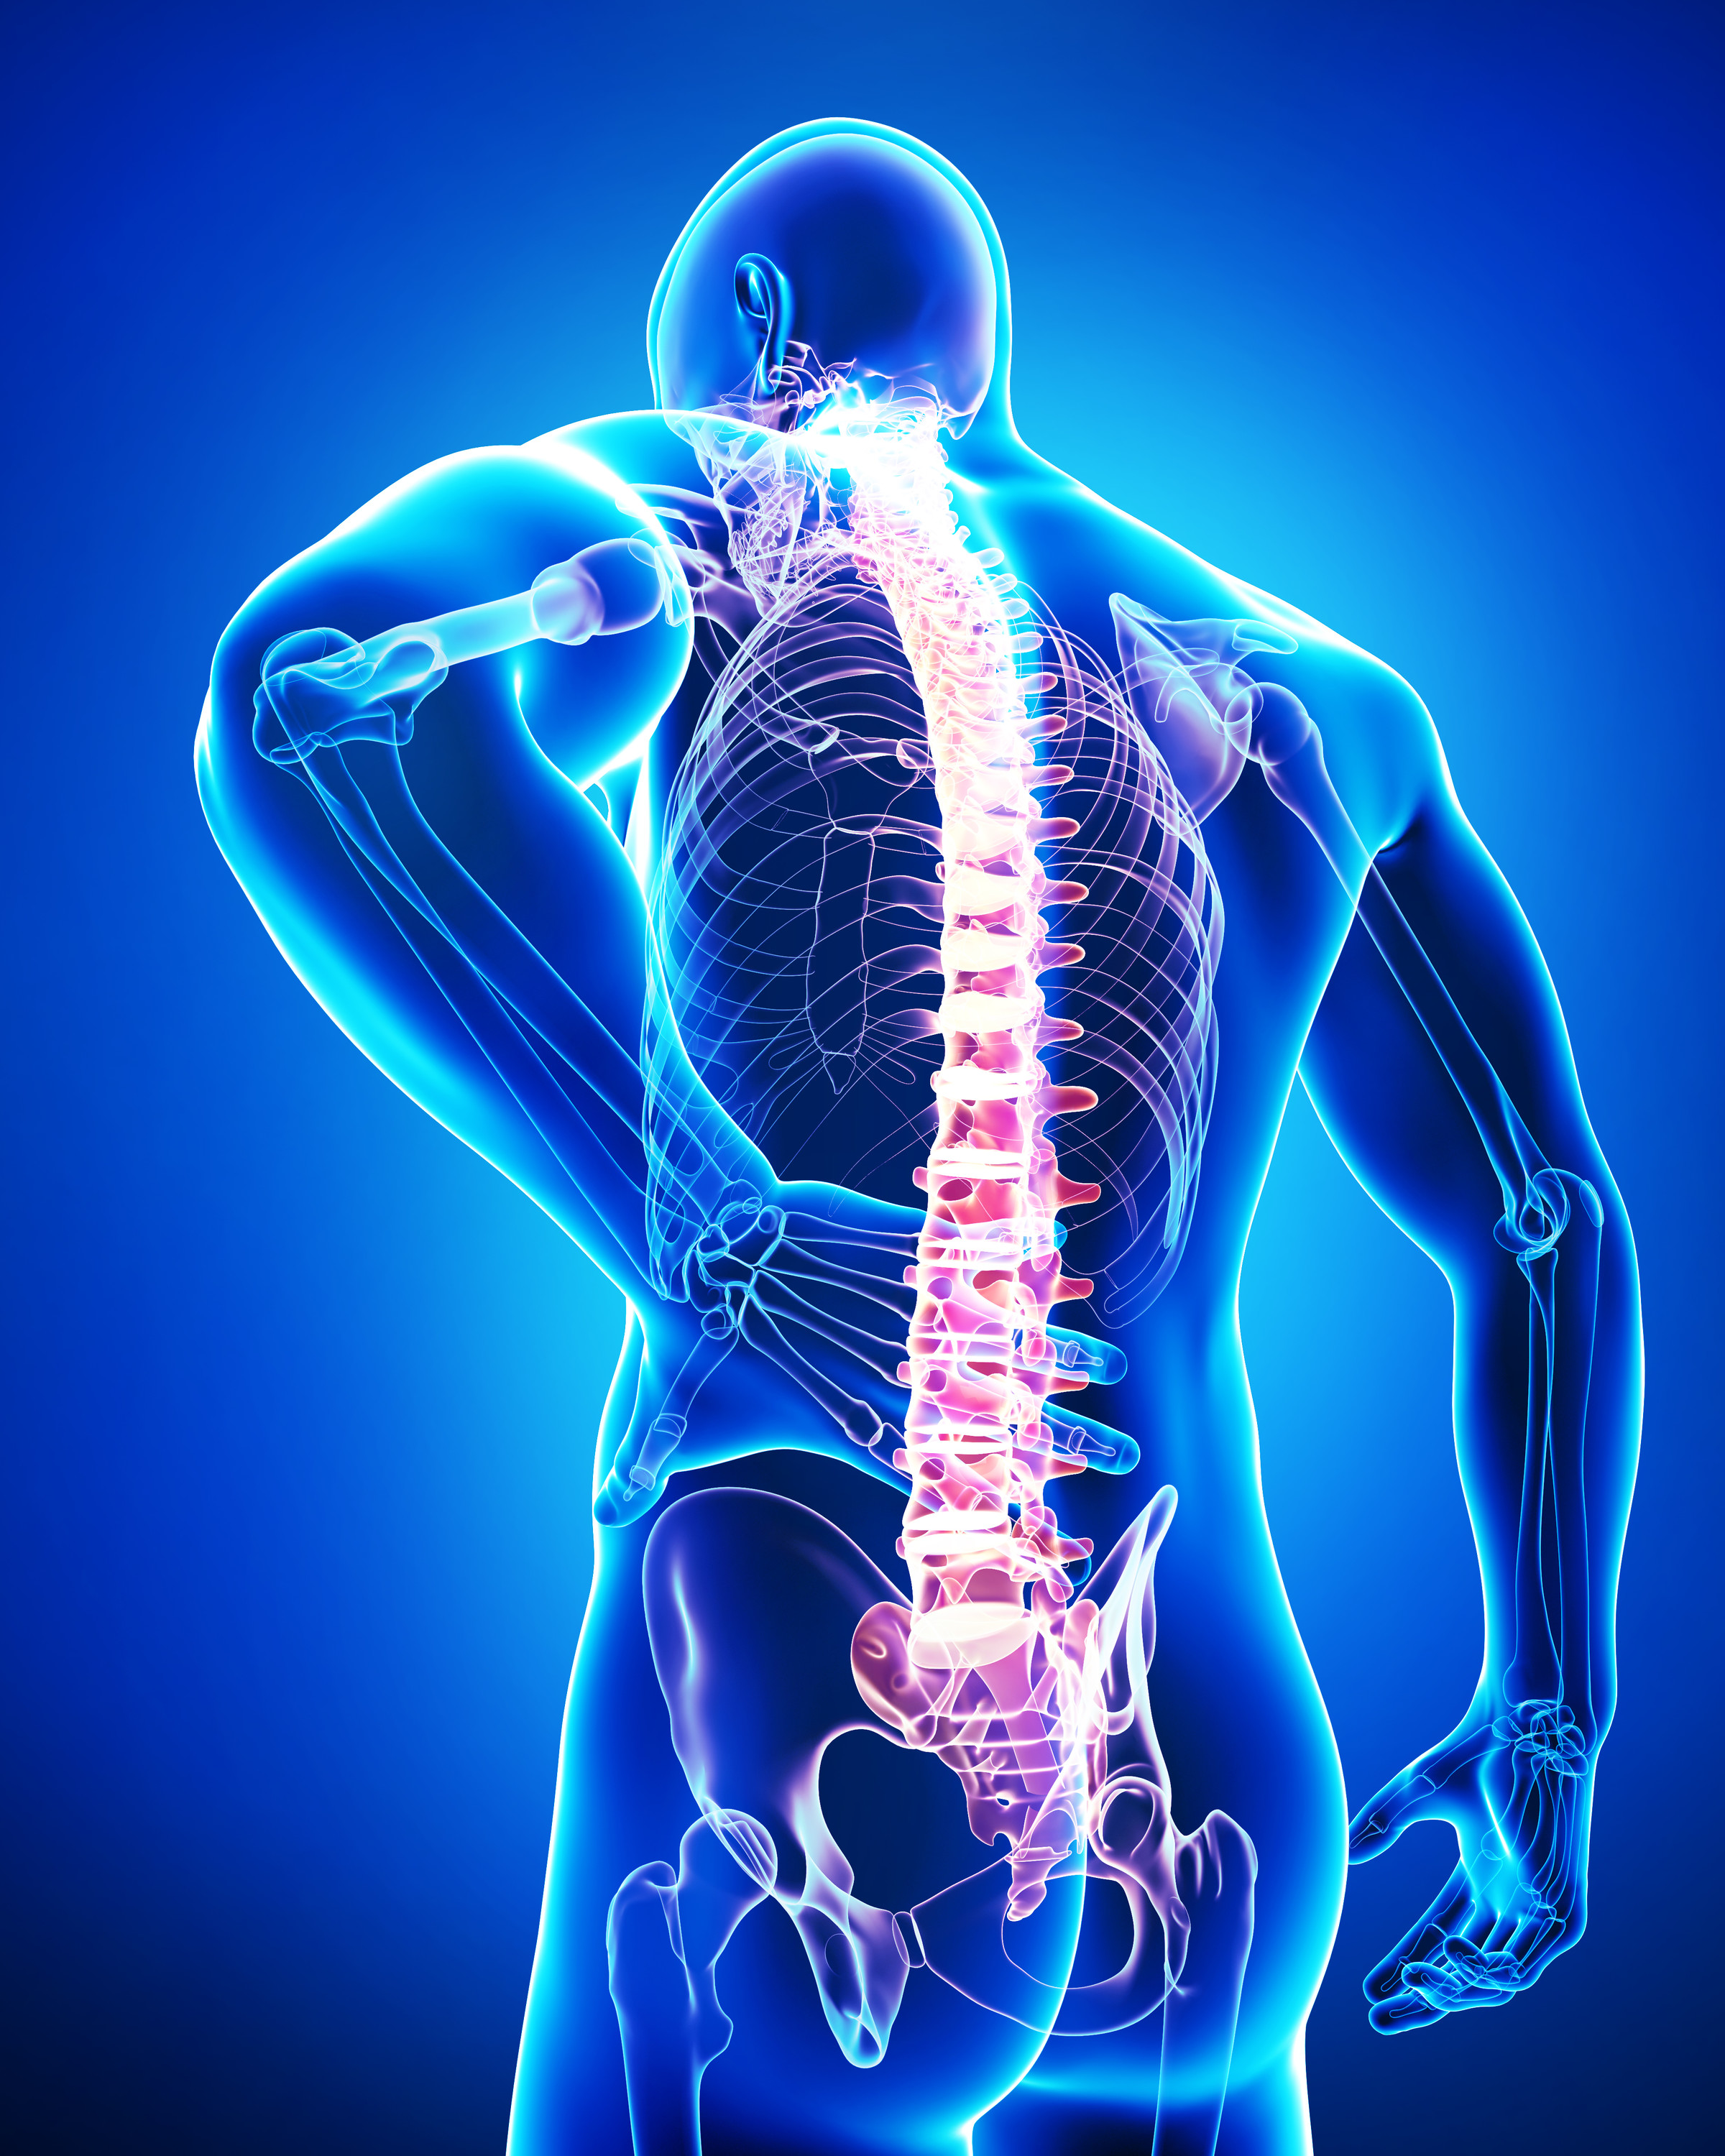 Nerve pain pressure or inflammation, depending upon its source, can cause sharp neck and back pain.